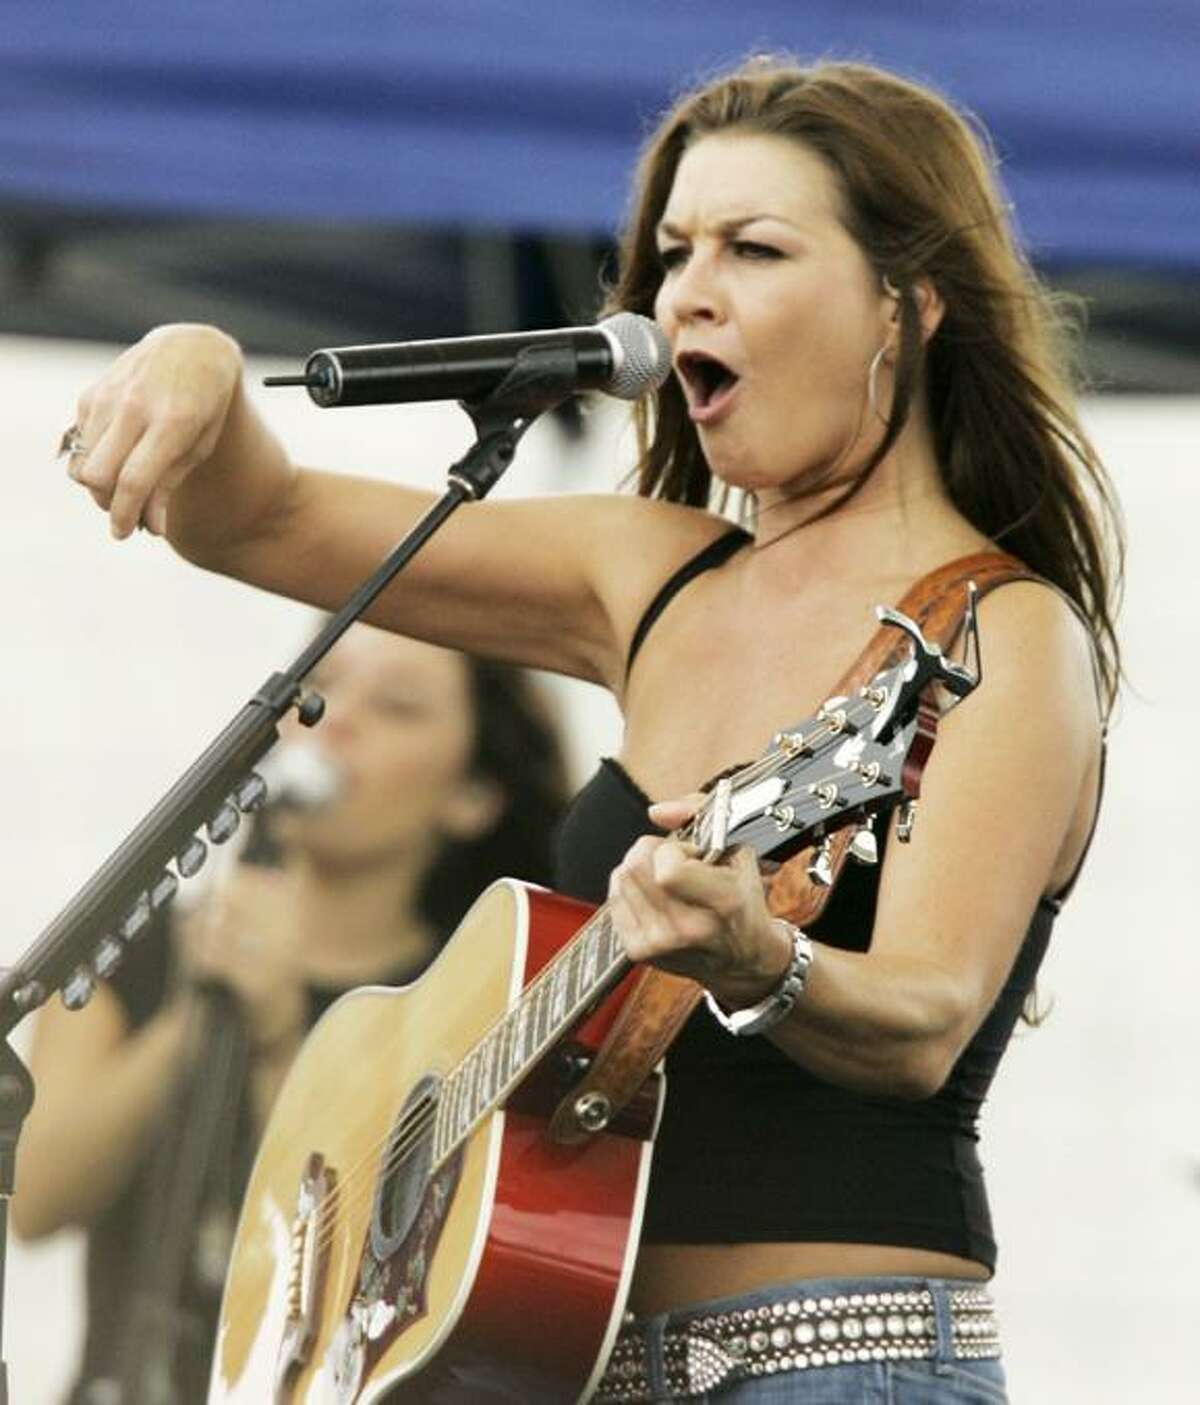 Country singer Gretchen Wilson performs for racing fans after practice for the Allstate 400 at the Brickyard auto race at the Indianapolis Motor Speedway in Indianapolis, Saturday, July 28, 2007. The 14th running of the race is Sunday. (AP Photo/Darron Cummings)